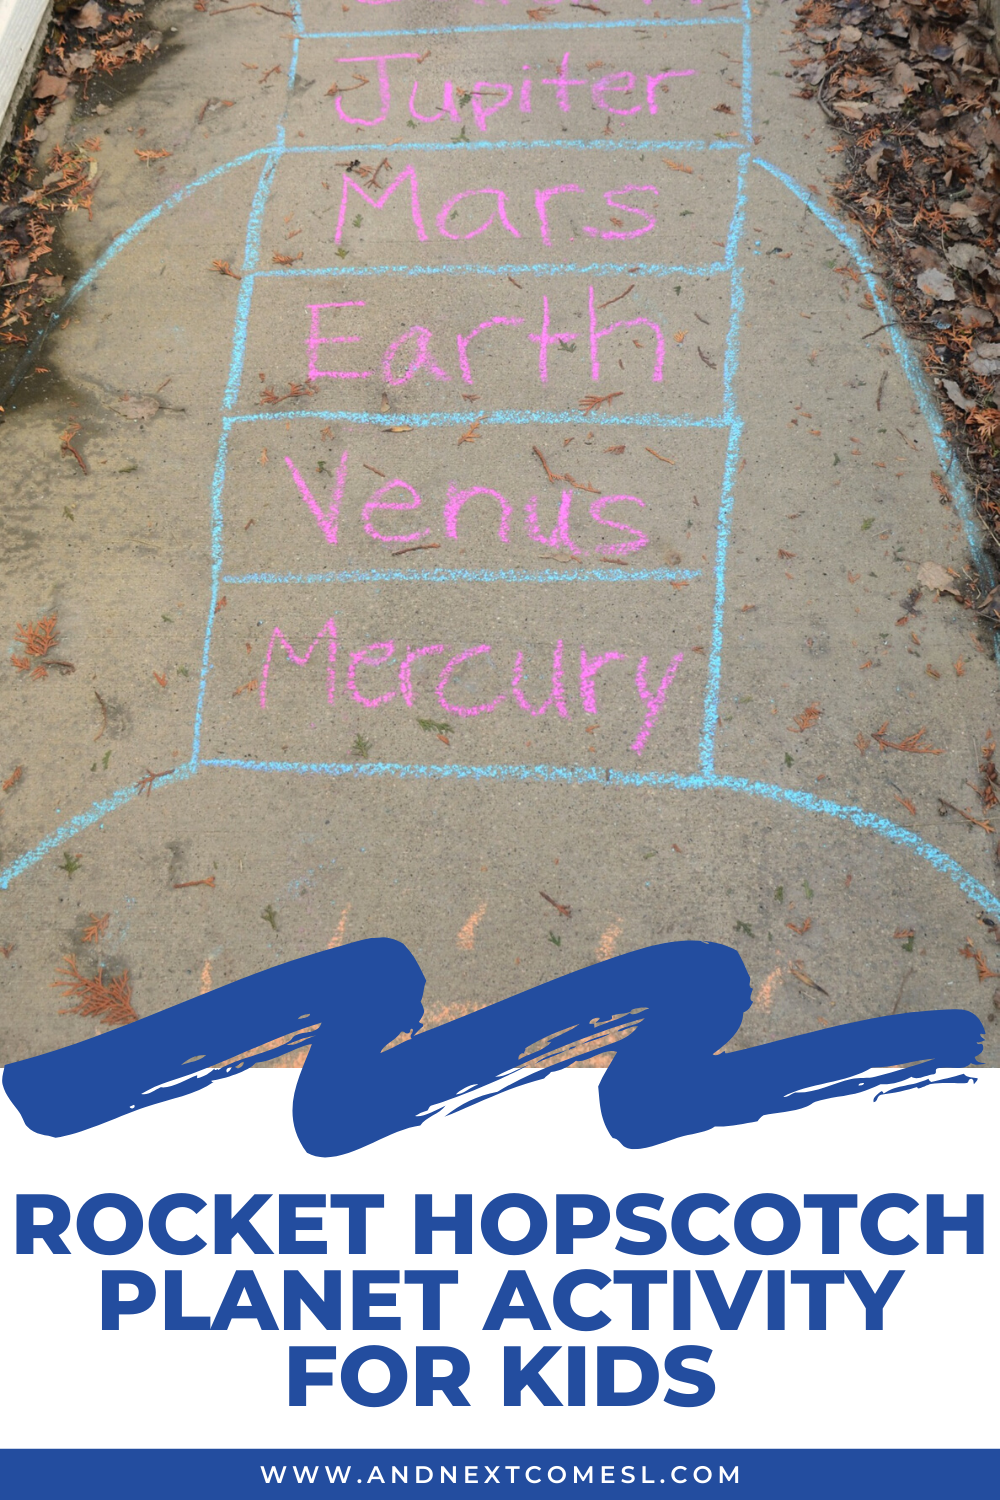 Rocket hopscotch planet activity for kids - a great way to get kids moving while learning about the order of the planets in our solar system